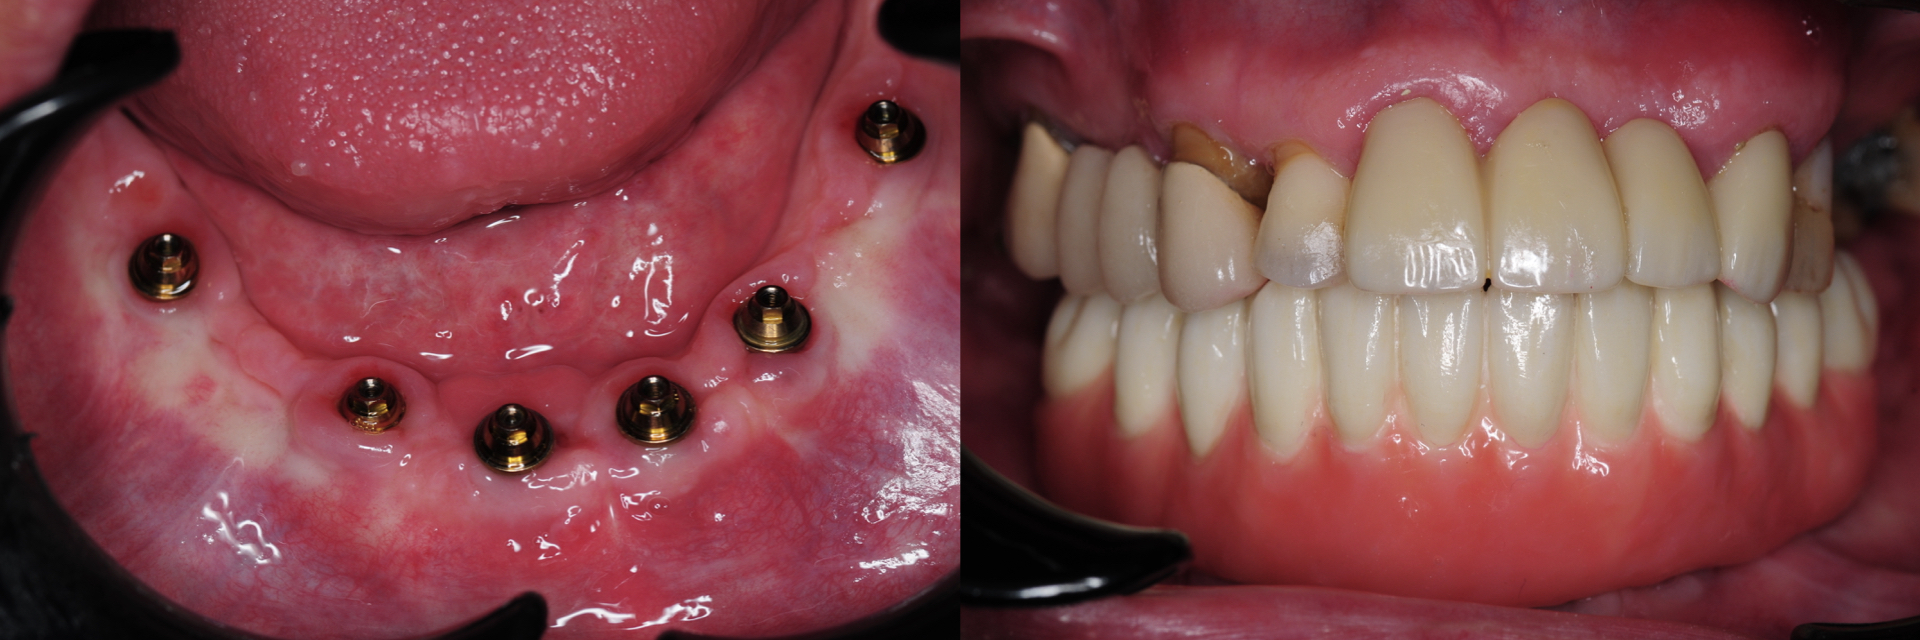 Digital-Workflow-for-Full-Arch-Implant-Supported-Teeth-Chrome-GuidedSmile-Kazemi-Oral-Surgery-Bethesda-Implant-Dentist.016